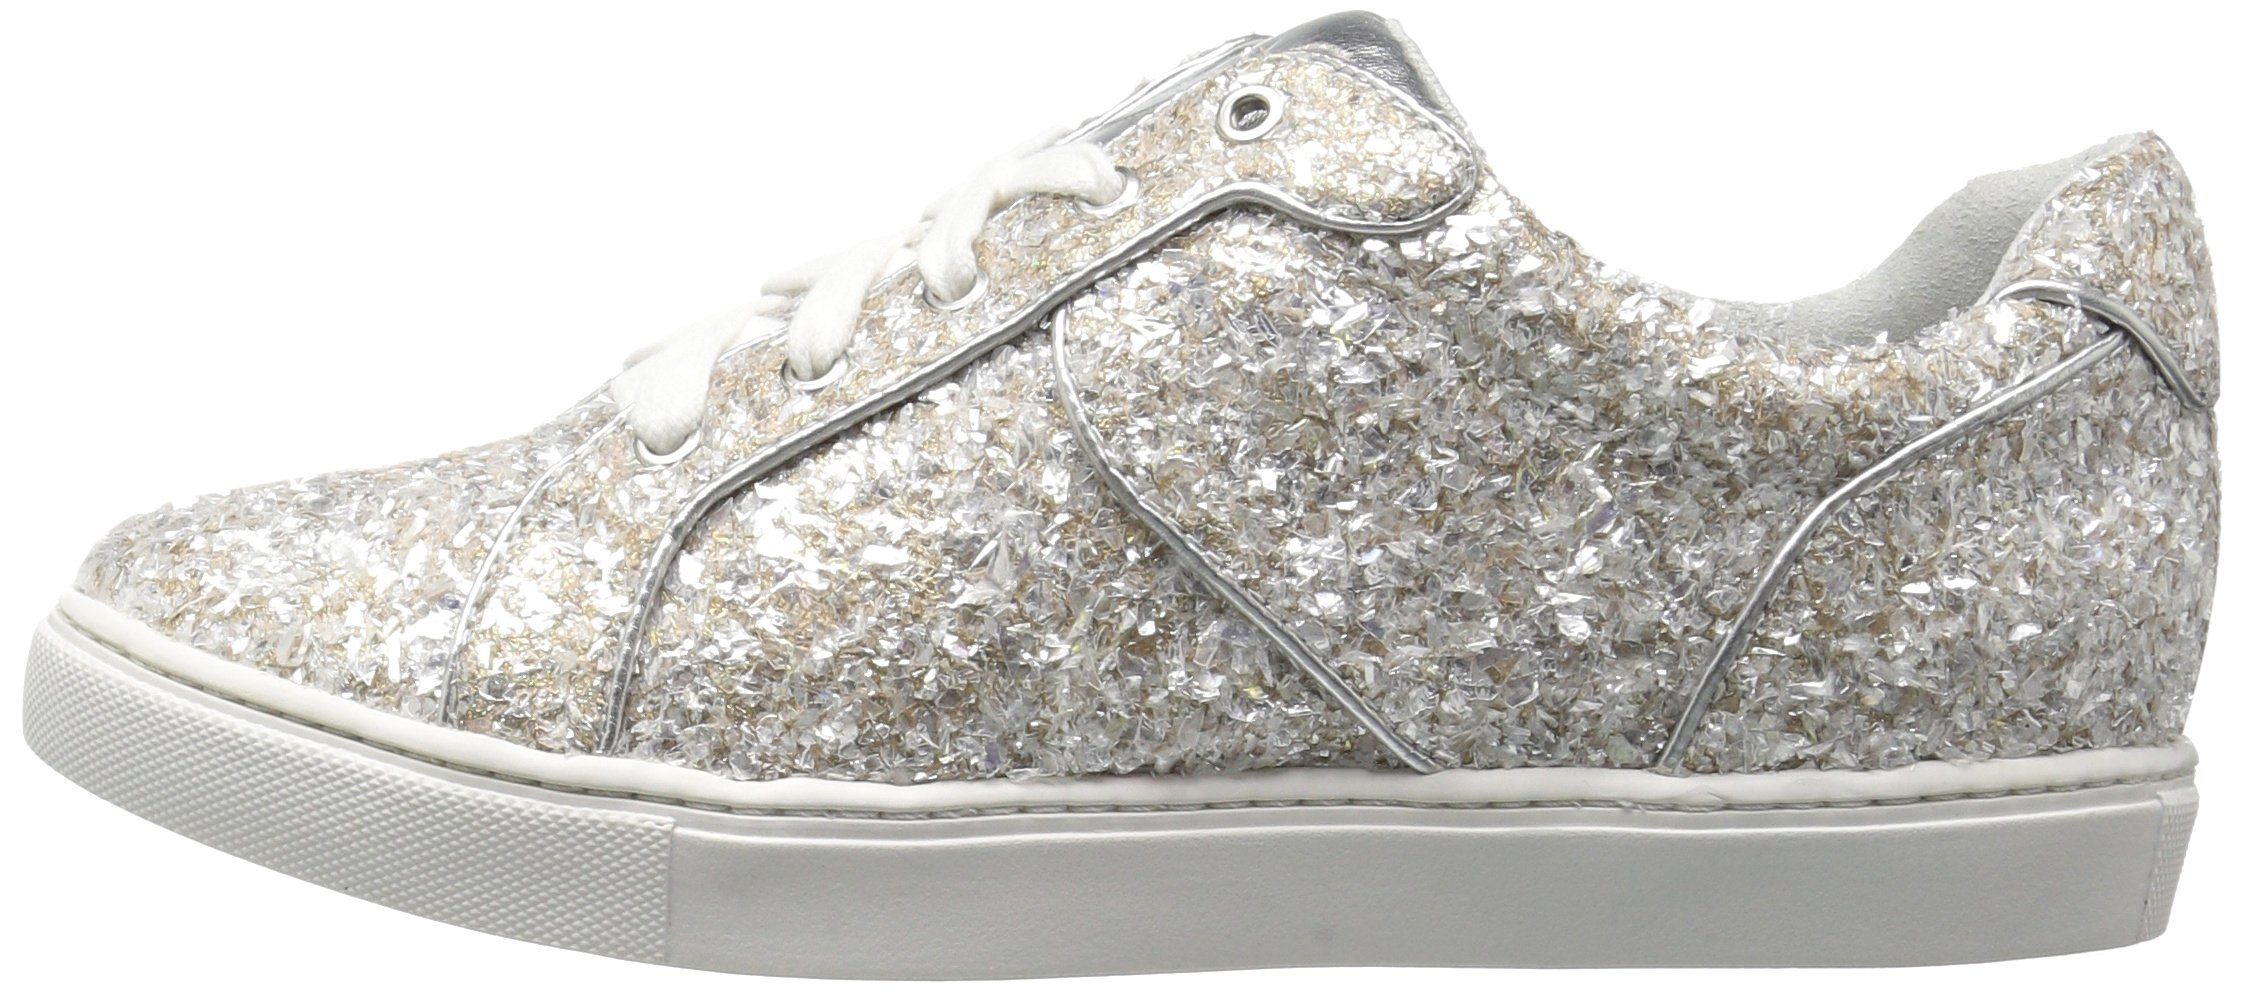 The Fix Women's Tawny Lace-up Fashion Sneaker, Silver Ice, 7.5 B US by The Fix (Image #5)